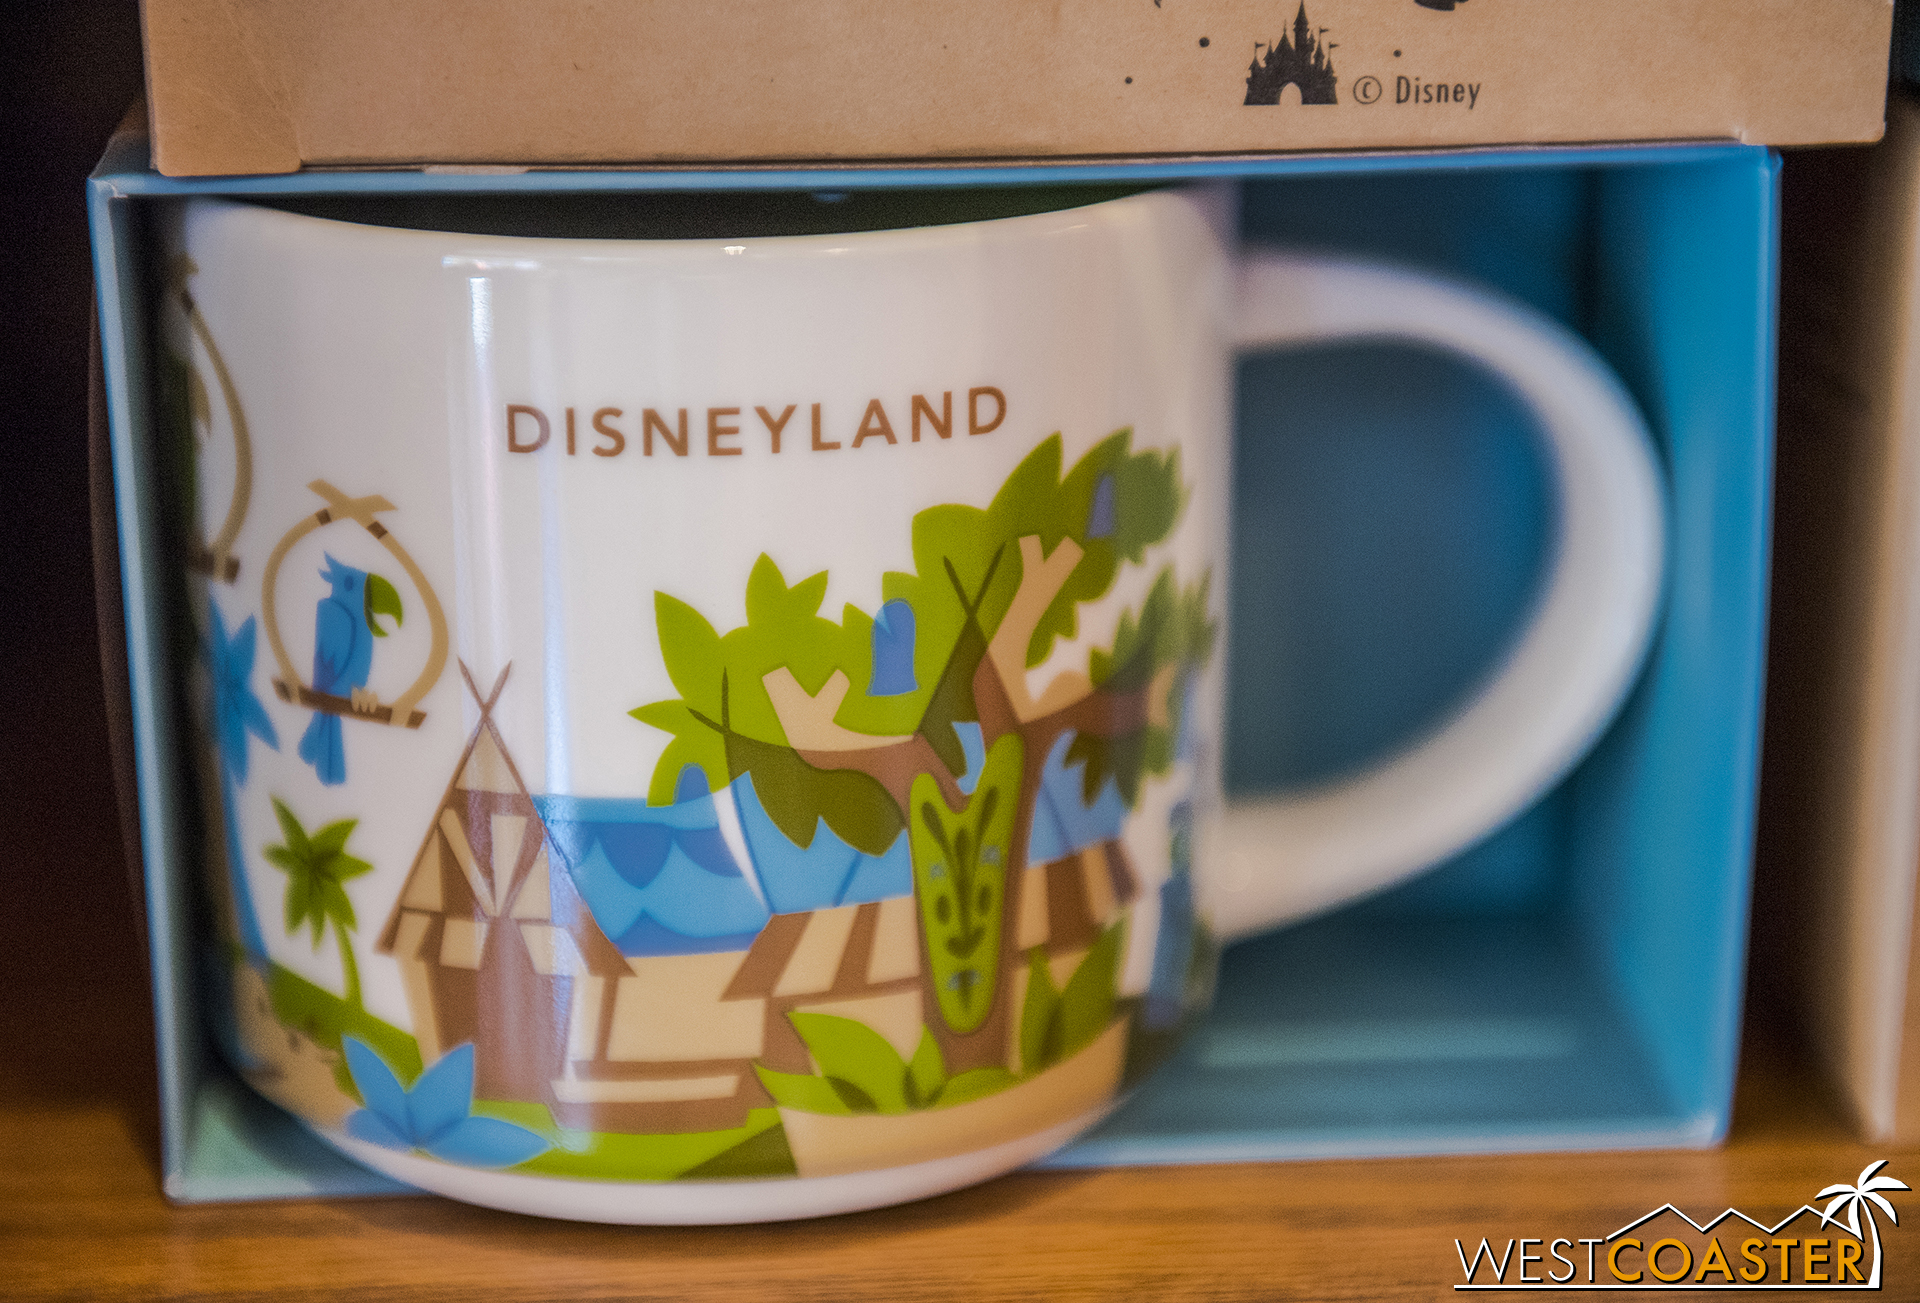 New Starbucks Adventureland mug.